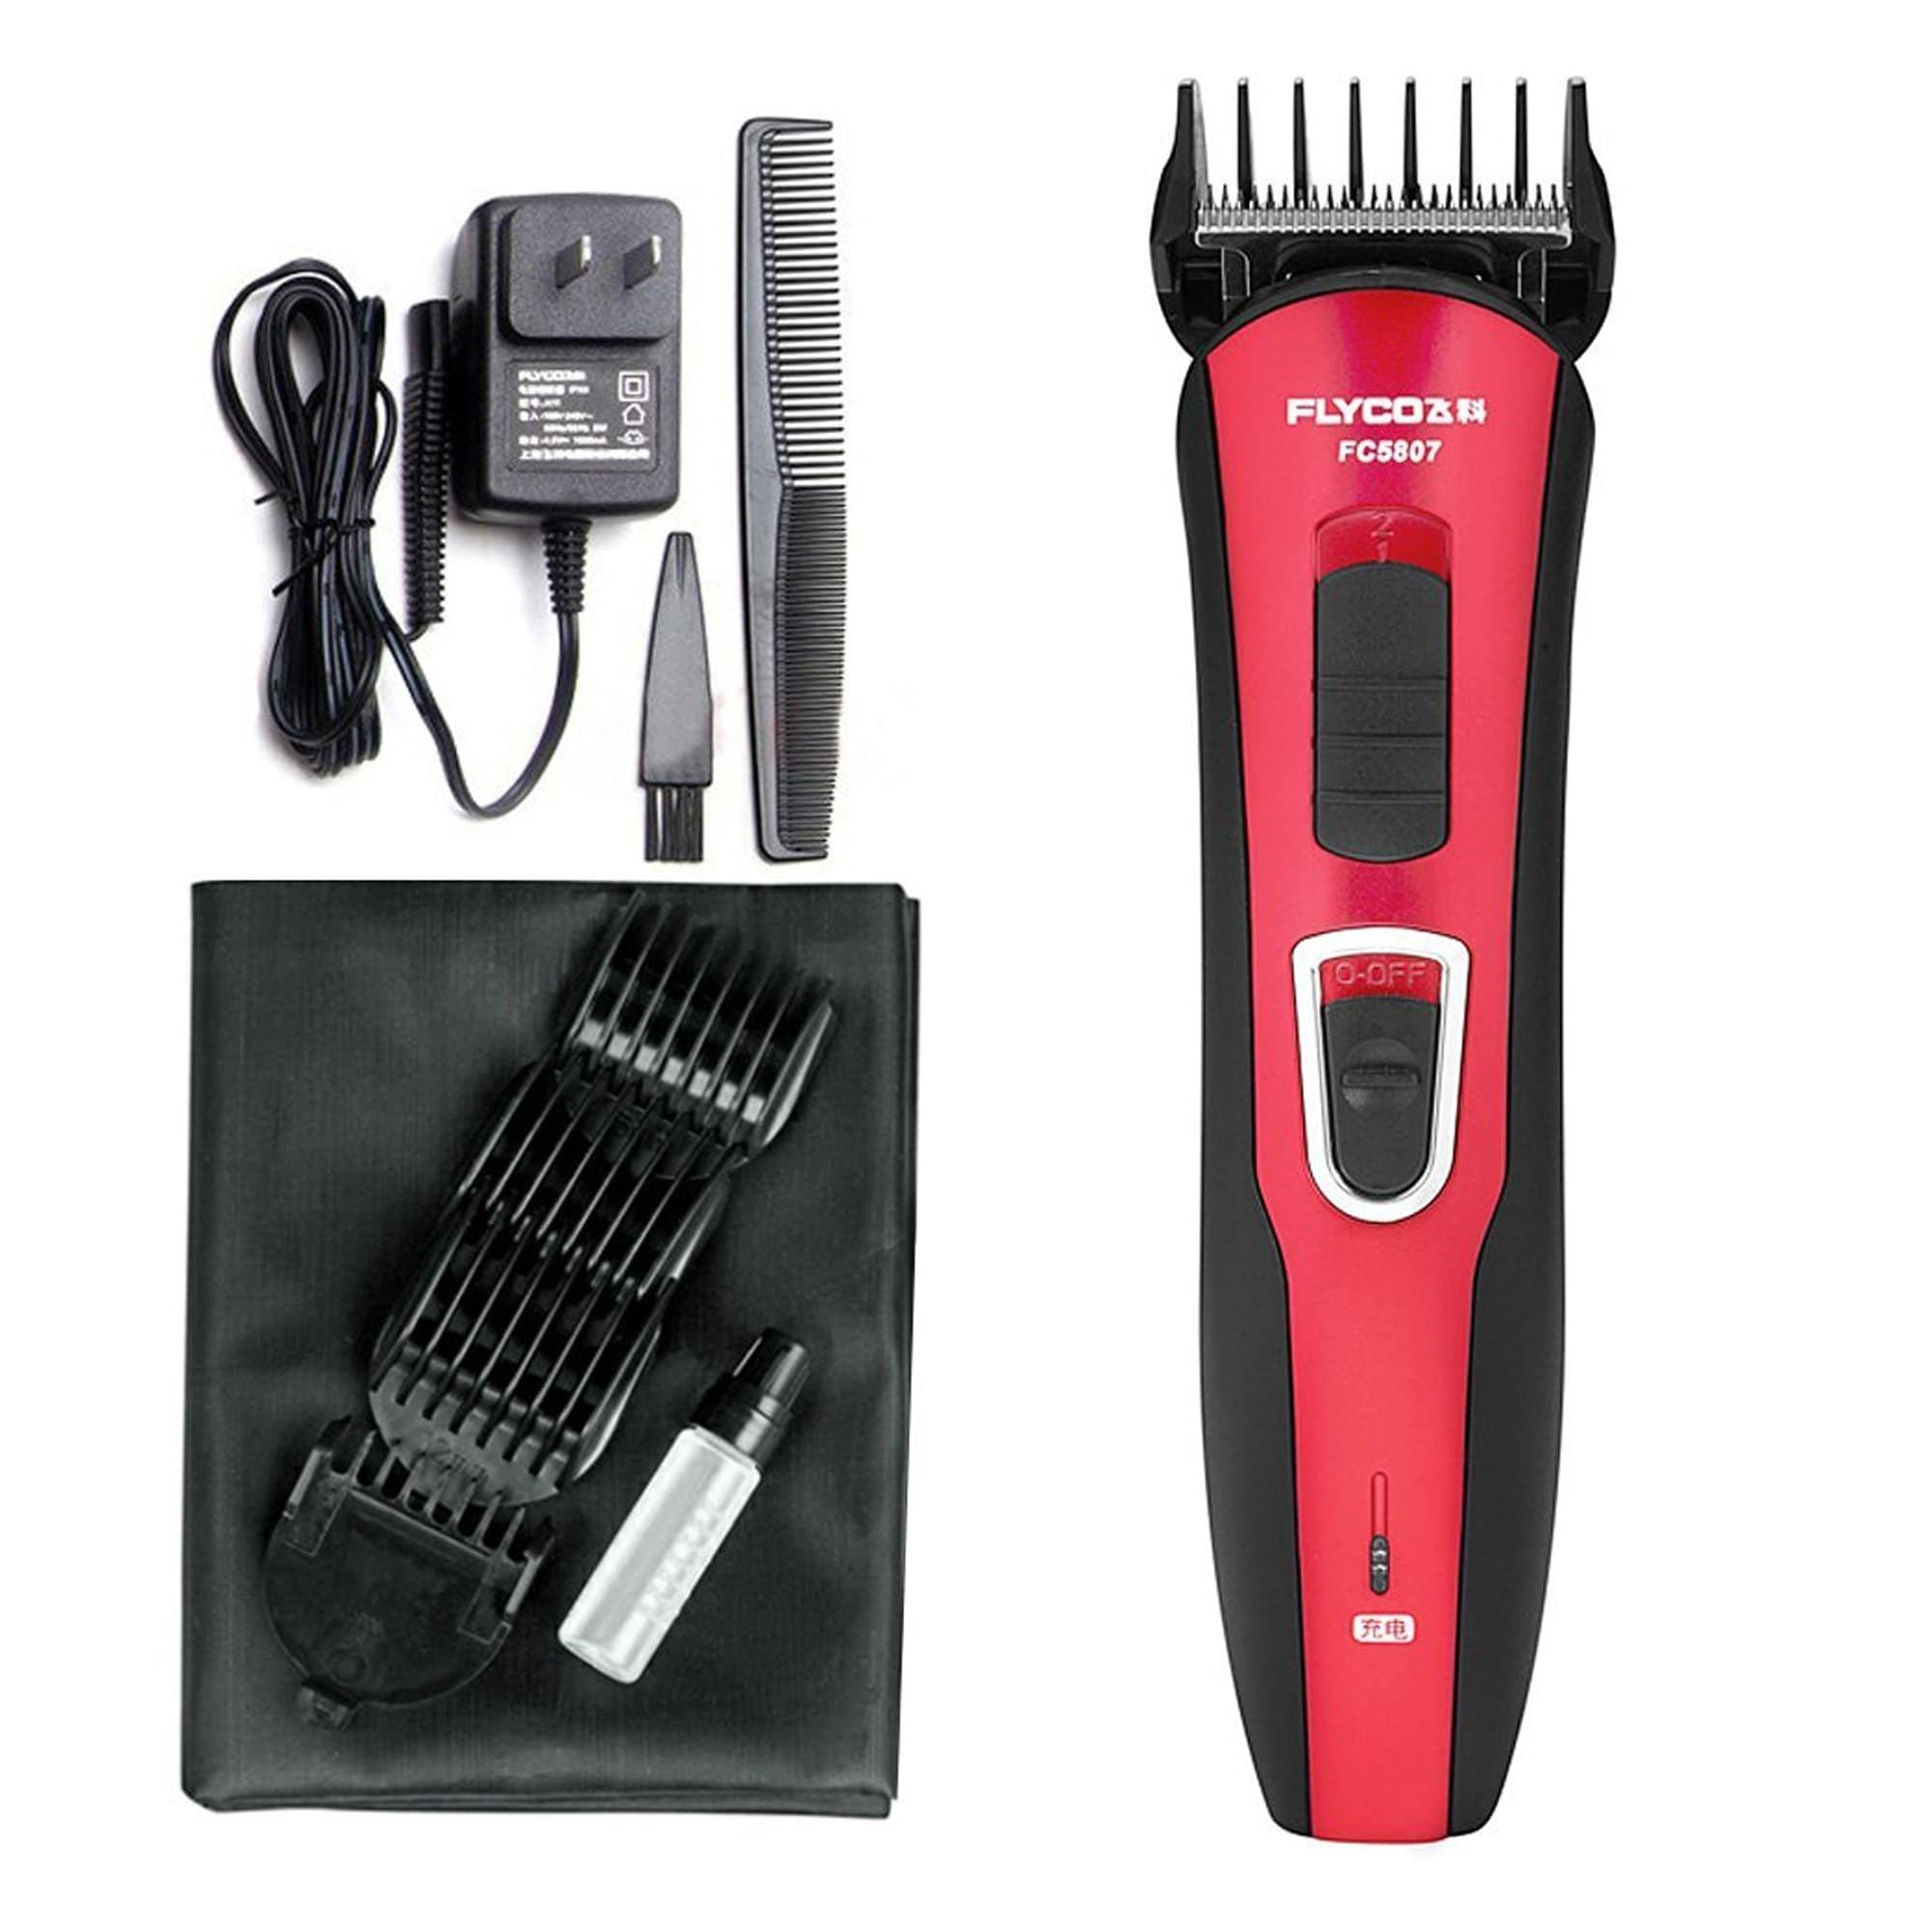 FC5807 Professional Electric Hair Clipper  -  Red and Black